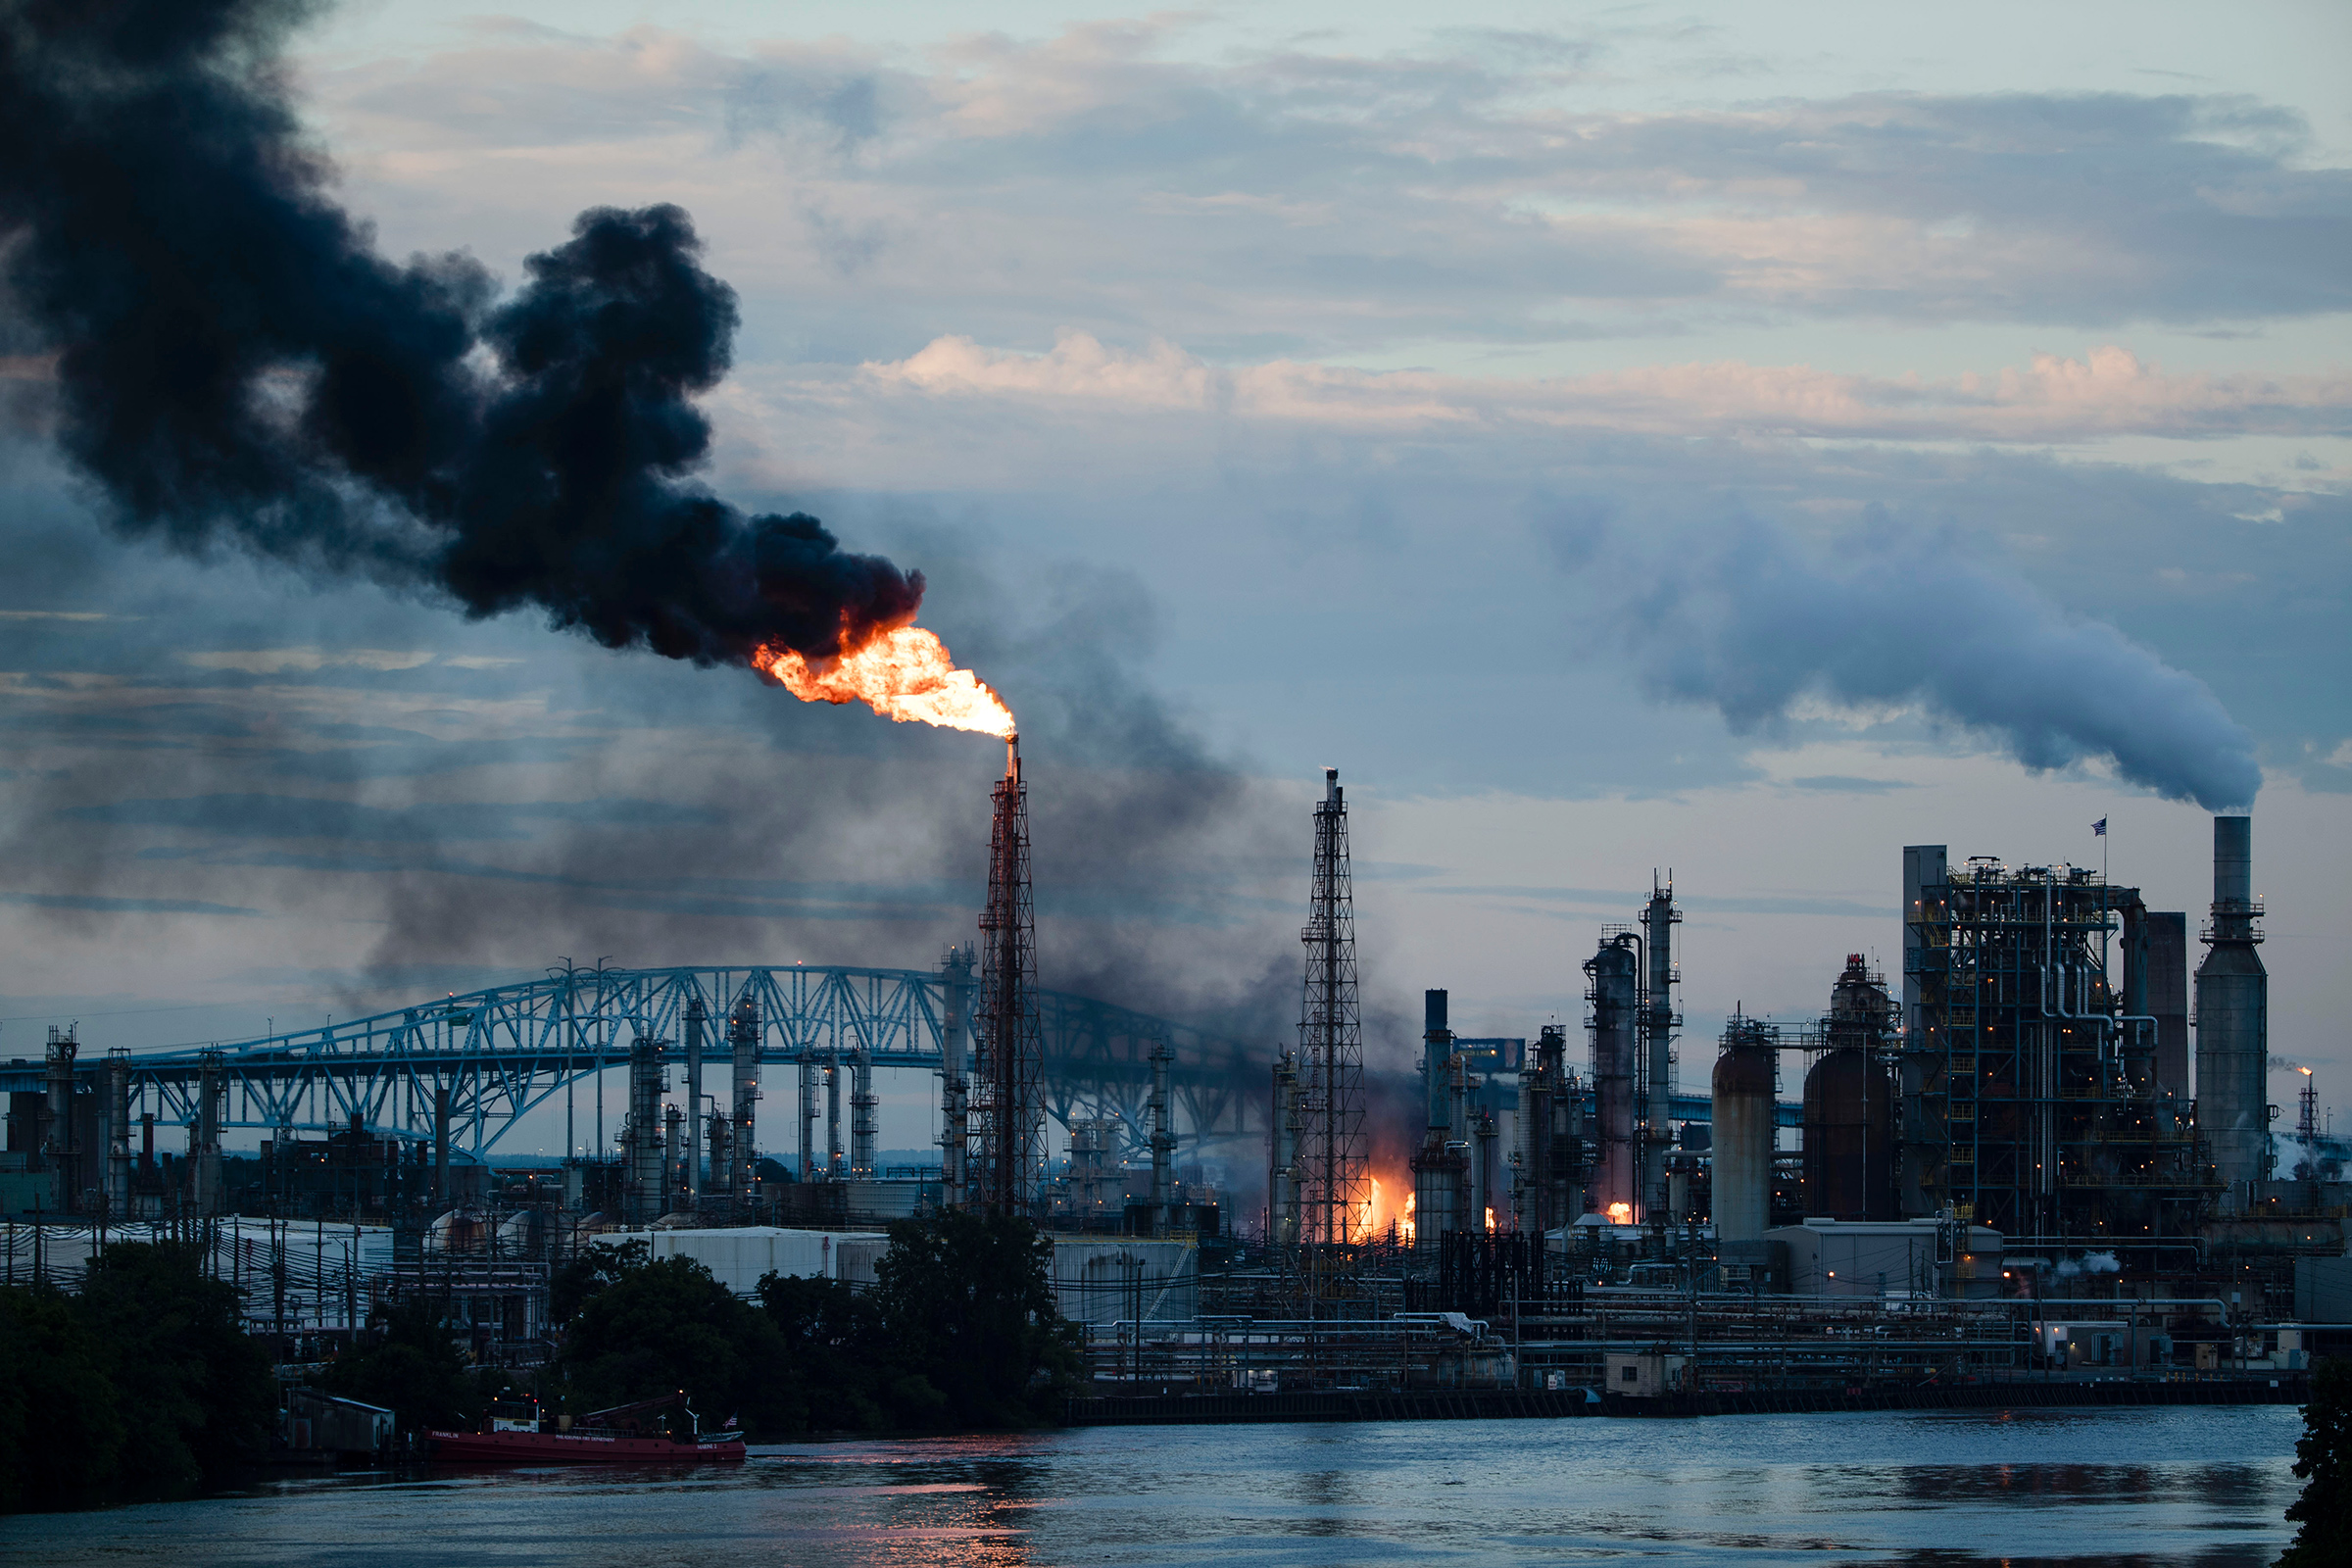 The Philadelphia Energy Solutions Refining Complex after catching fire on June 21, 2019